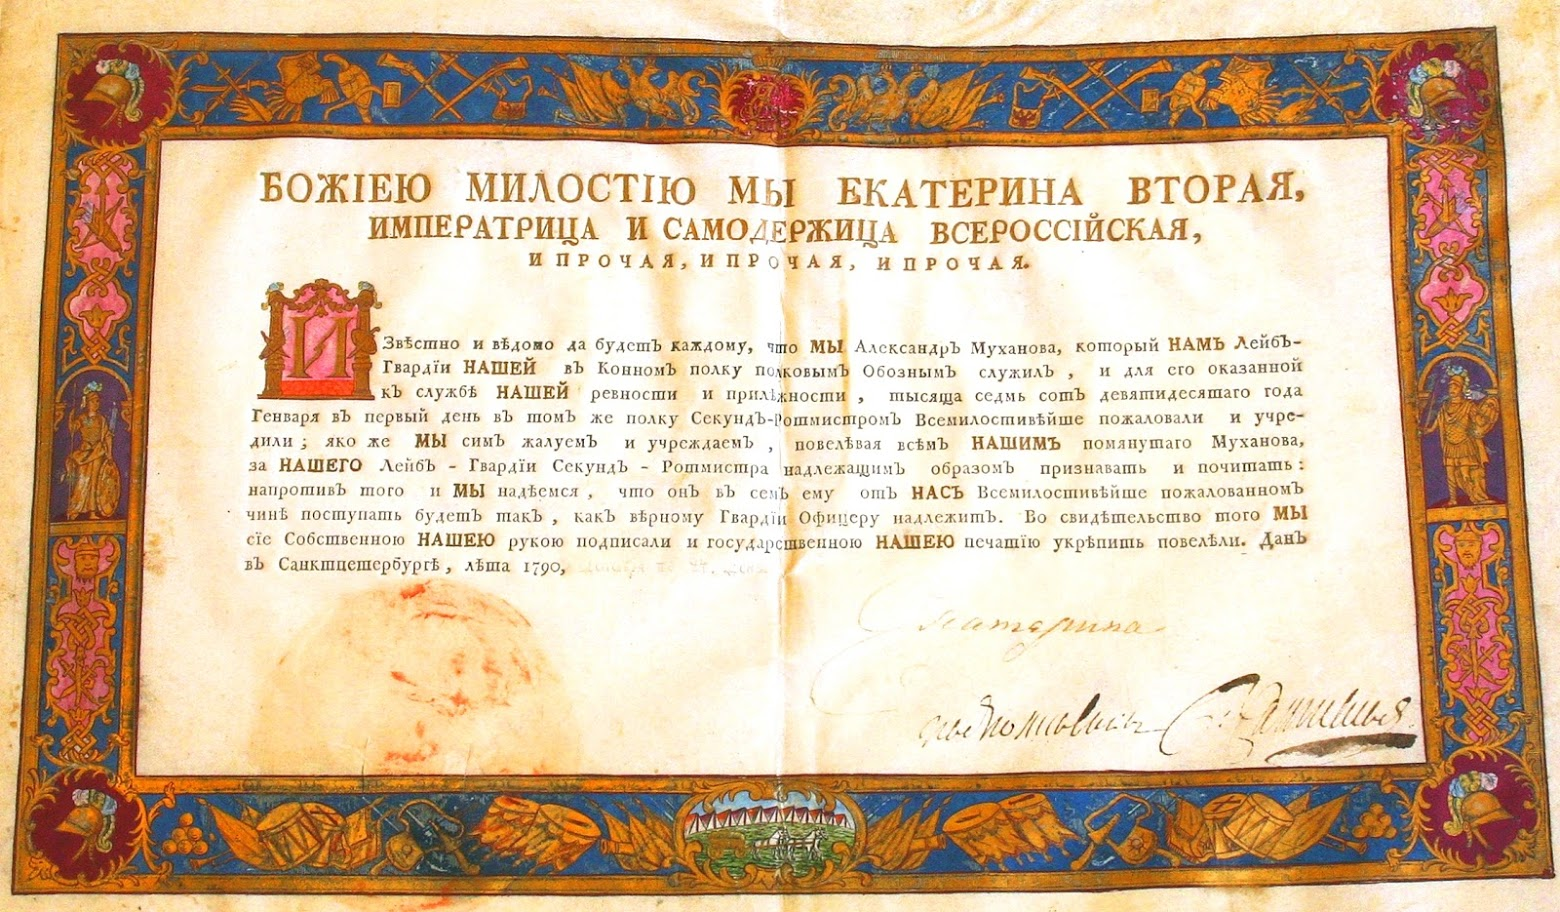 [Promotion charter signed by Catherine II of Russia]